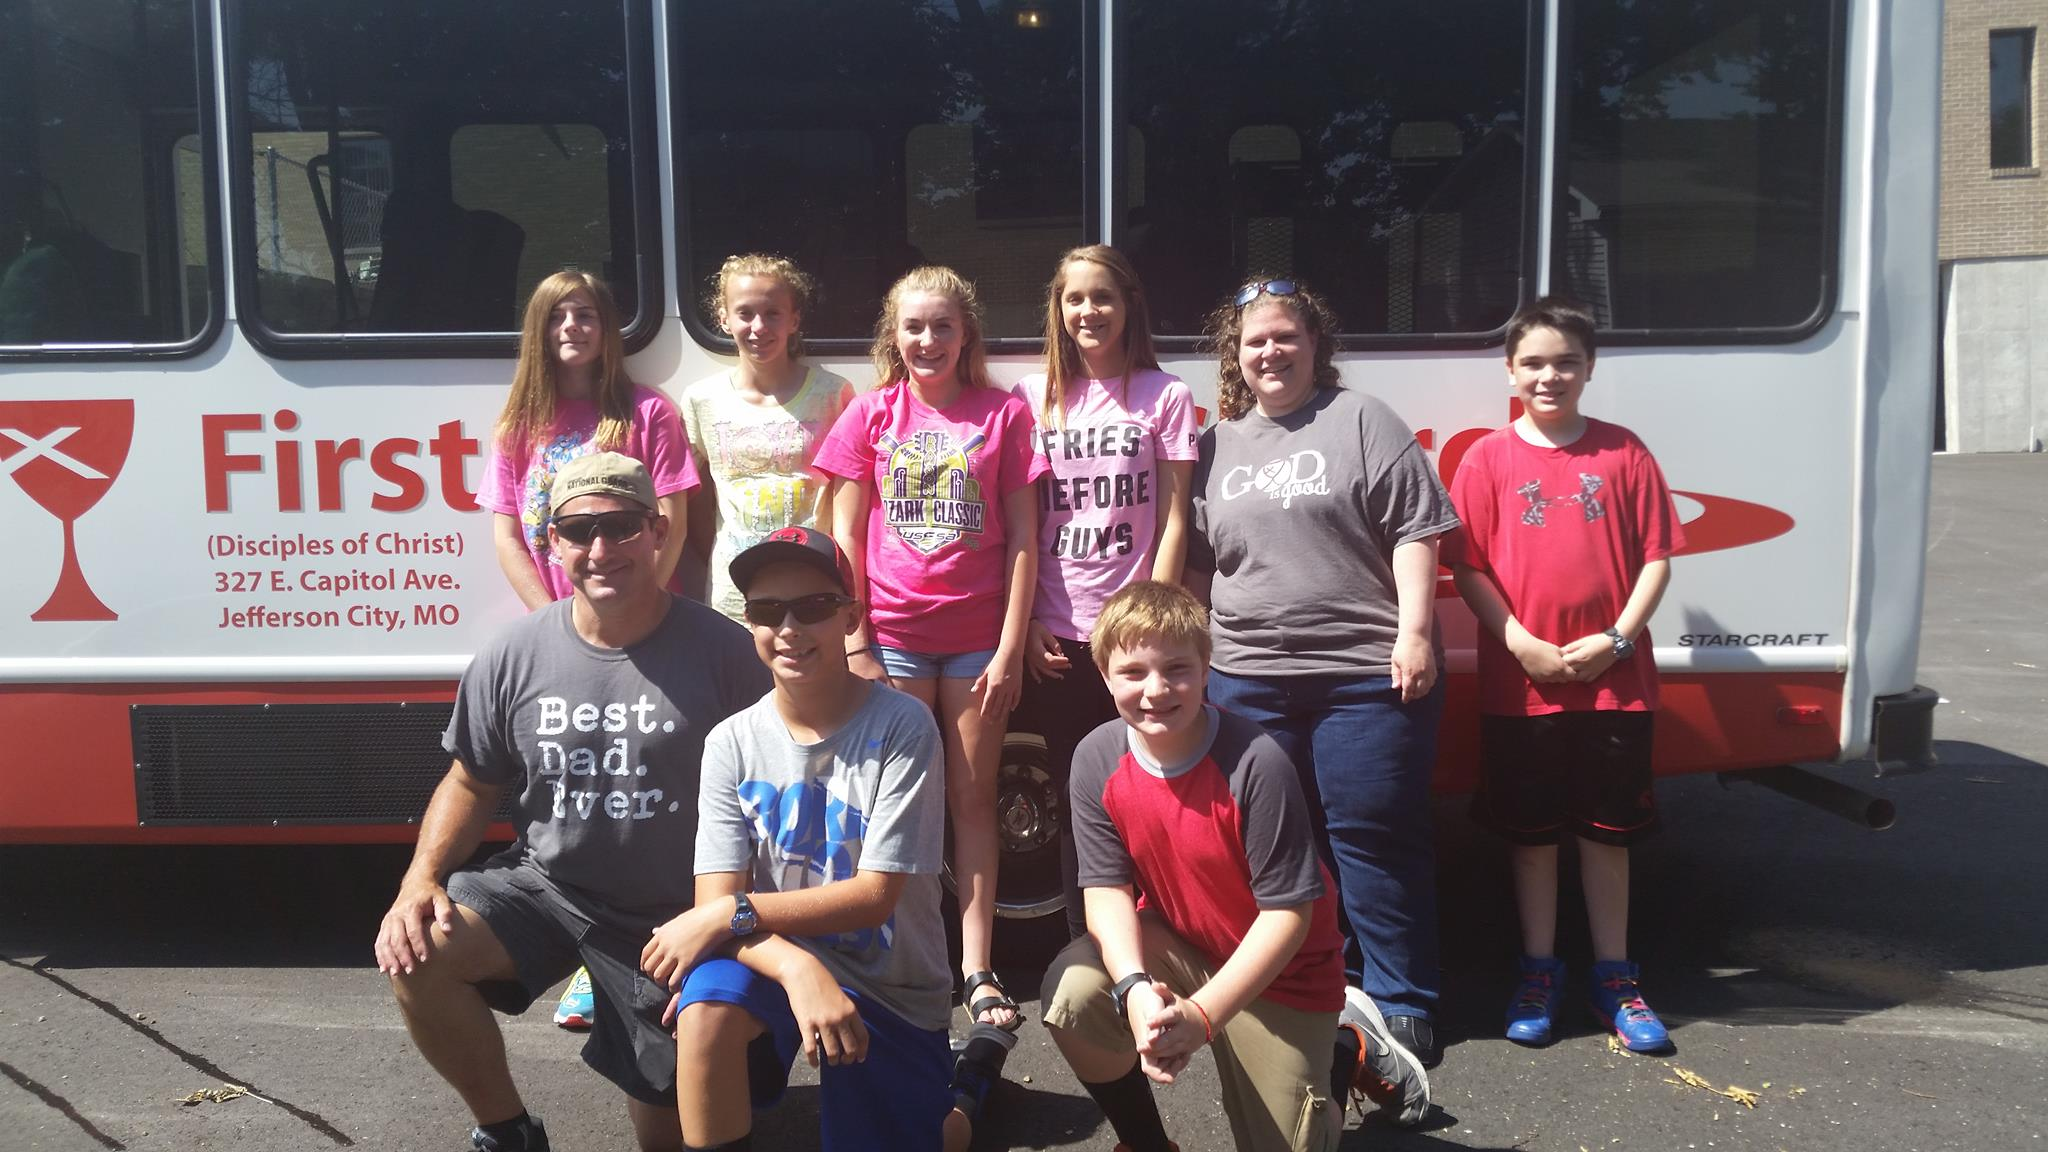 The group from FCC in Jefferson City sets out on their adventure!